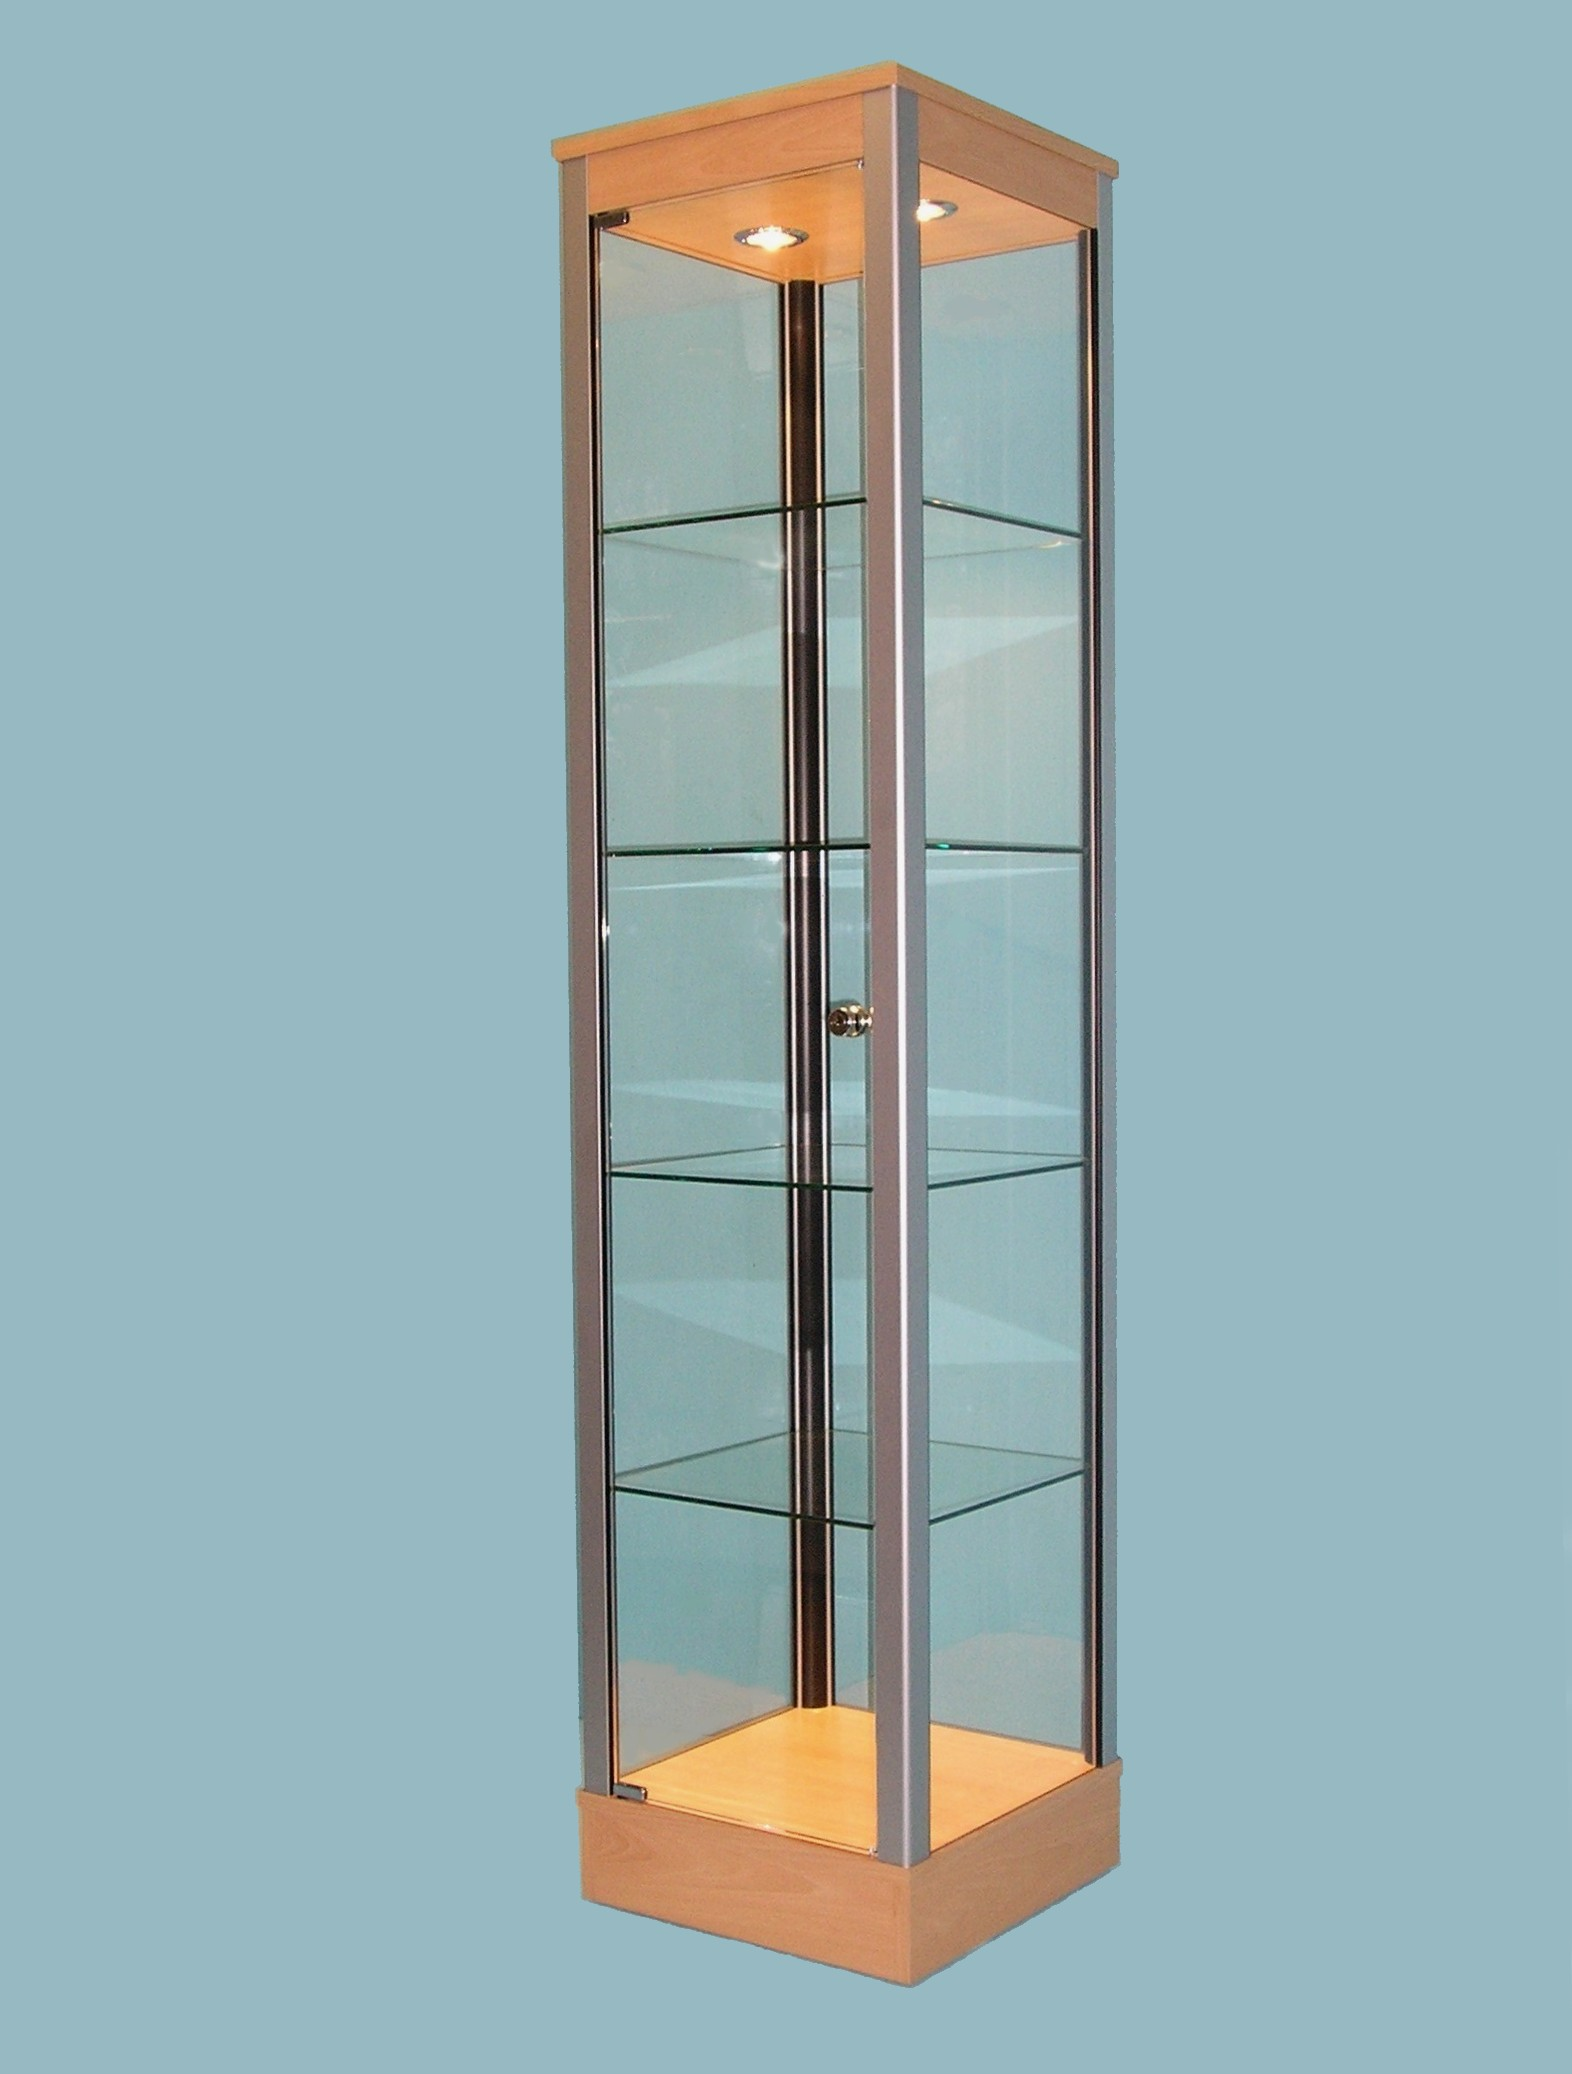 GLASS DISPLAY CABINETS, Designex Cabinets, D20 Tower Cabinet